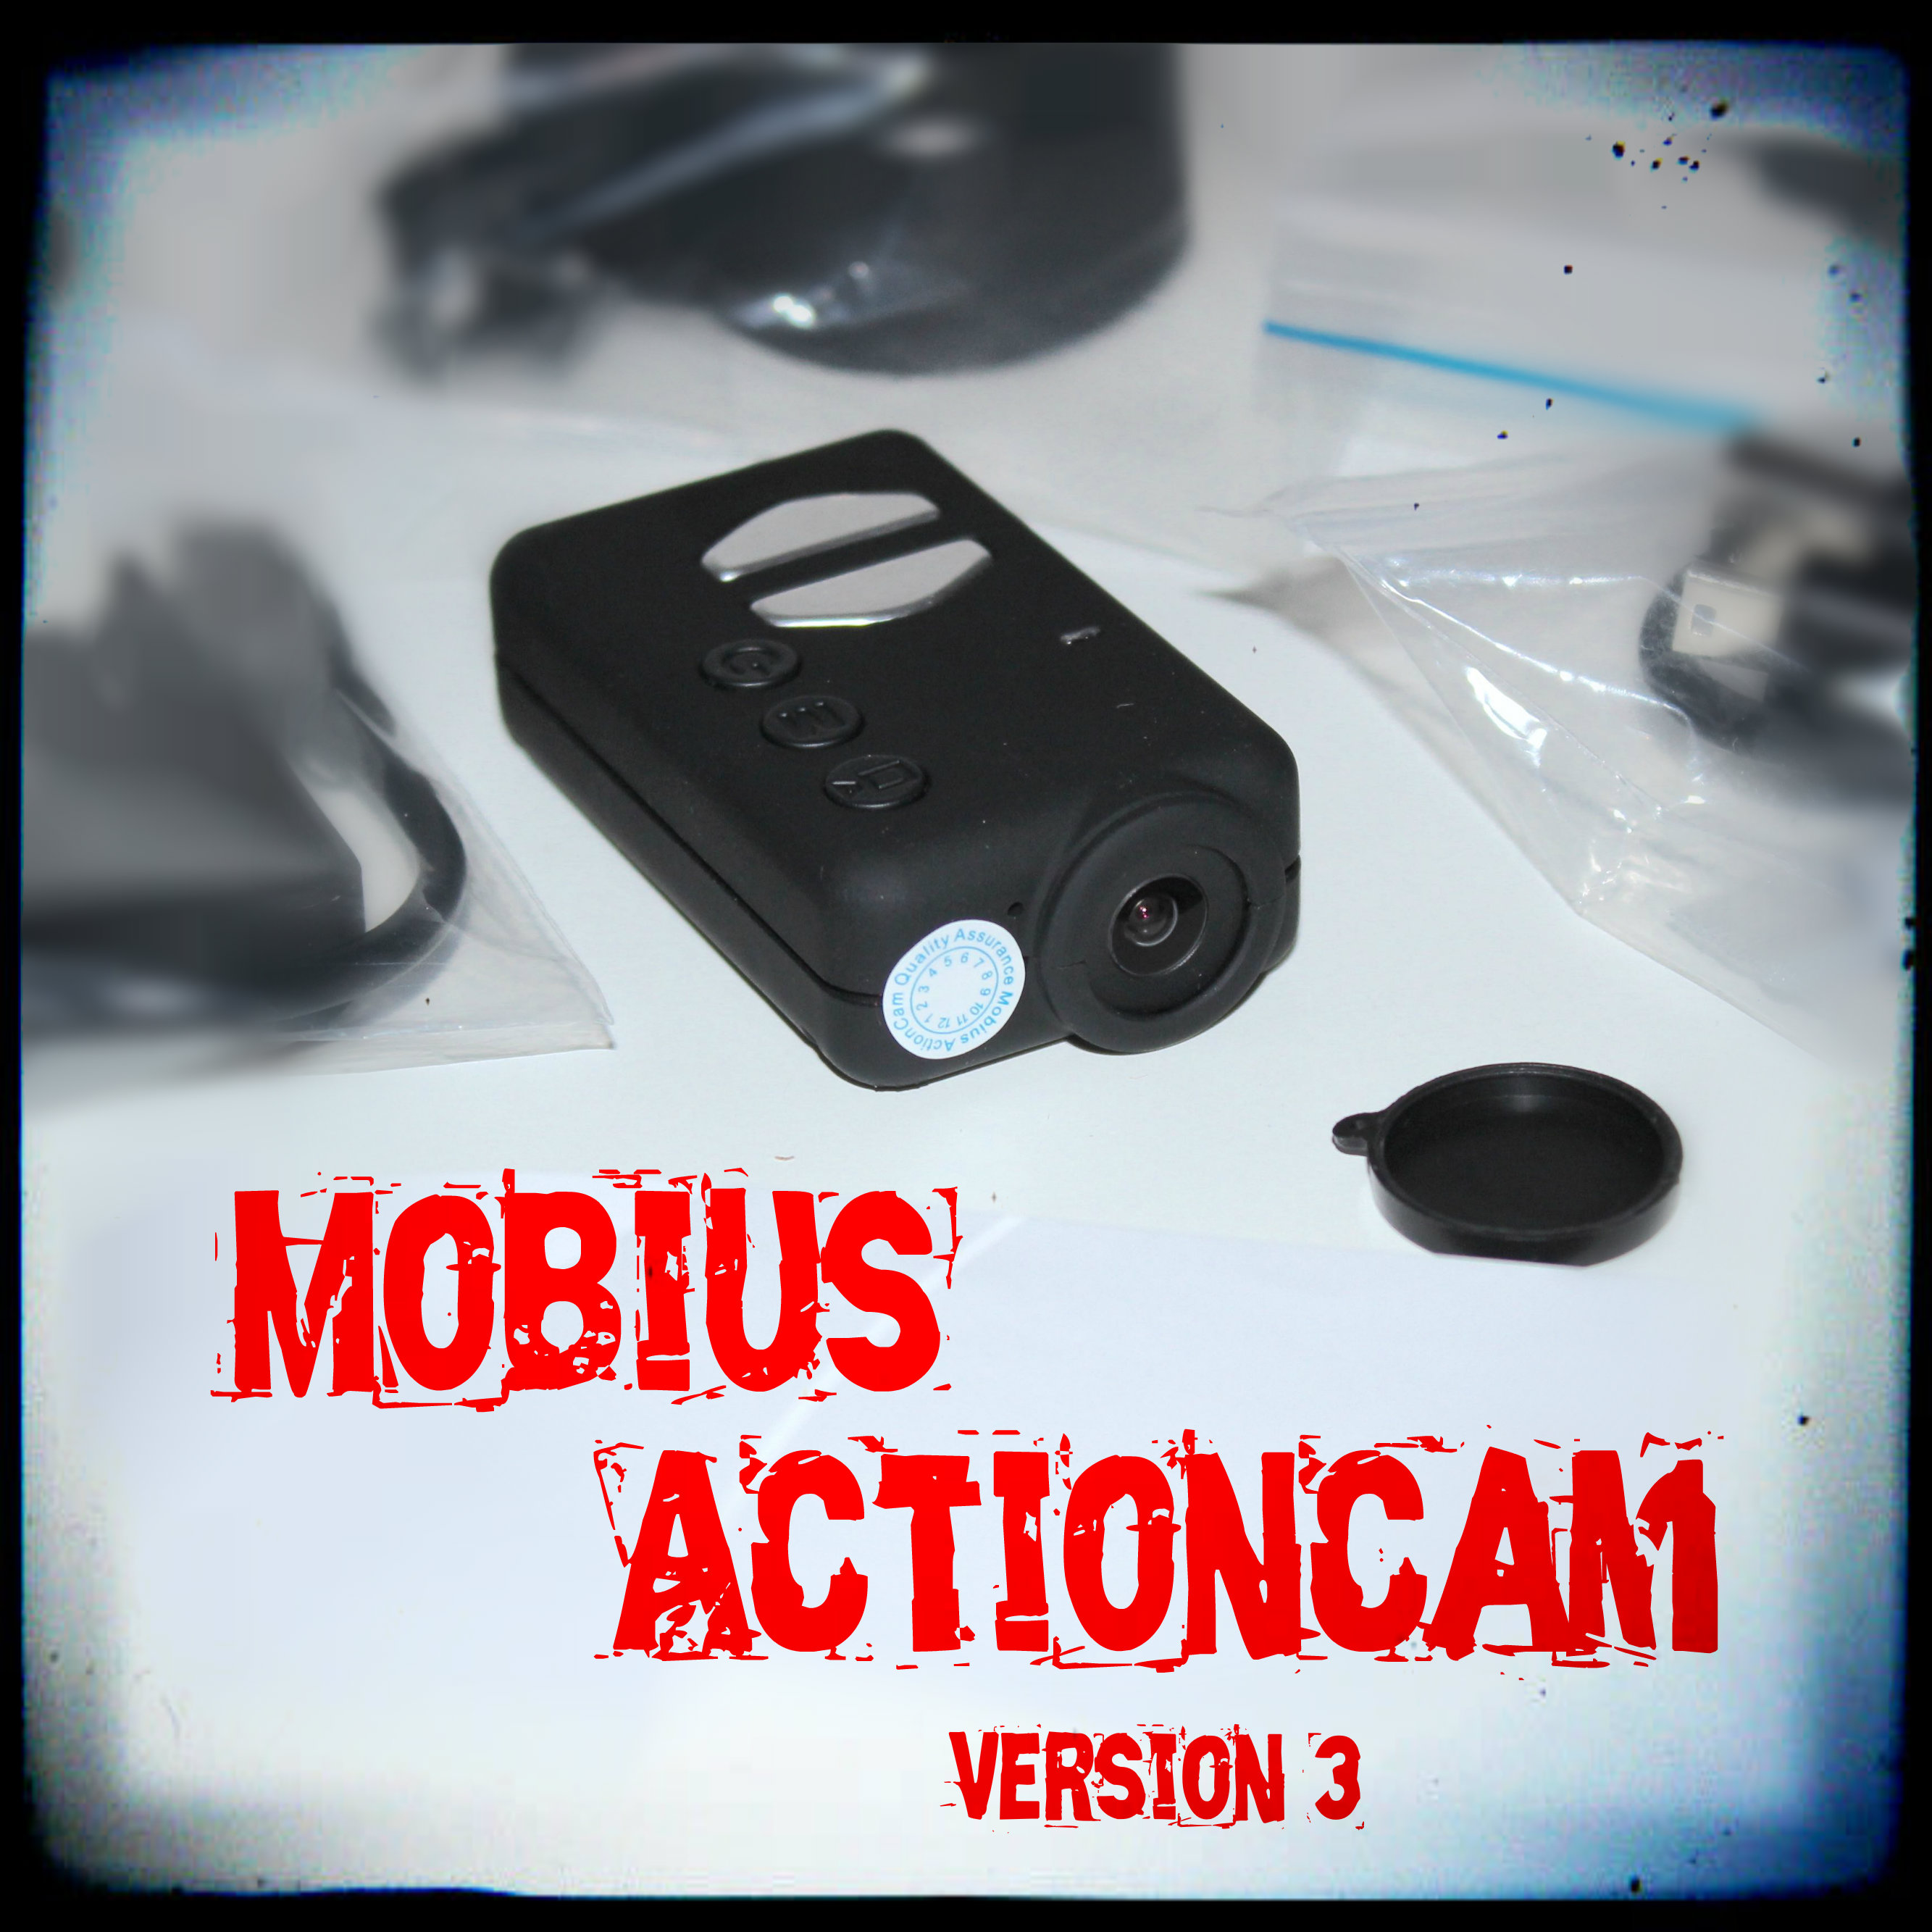 mobius actioncam vielseitige alternative metropolitan. Black Bedroom Furniture Sets. Home Design Ideas